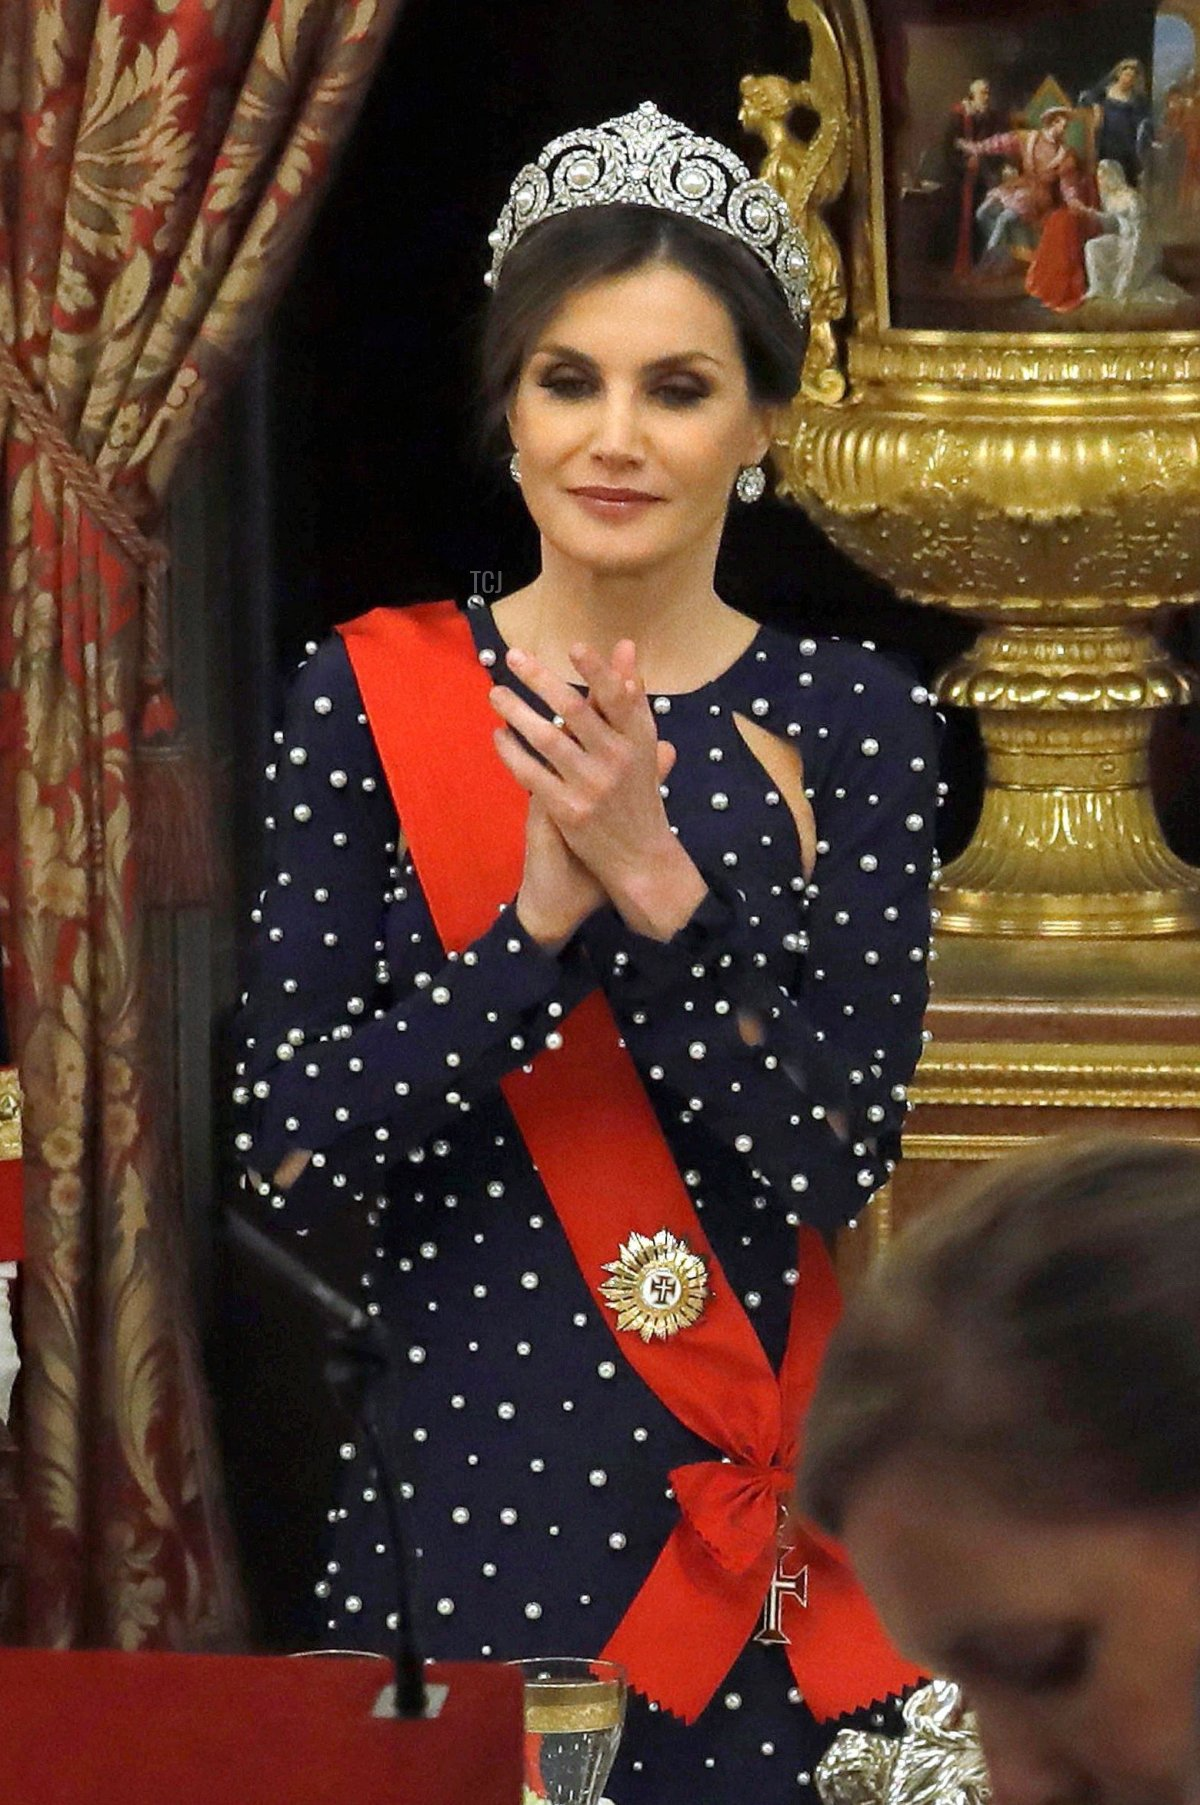 Queen Letizia of Spain (C) applauds between Portuguese President Marcelo Rebelo de Sousa (2L) and Spanish Prime Minister Mariano Rajoy (R) in front of King Felipe VI of Spain (L) during a state dinner at the Royal Palace in Madrid on April 16, 2018